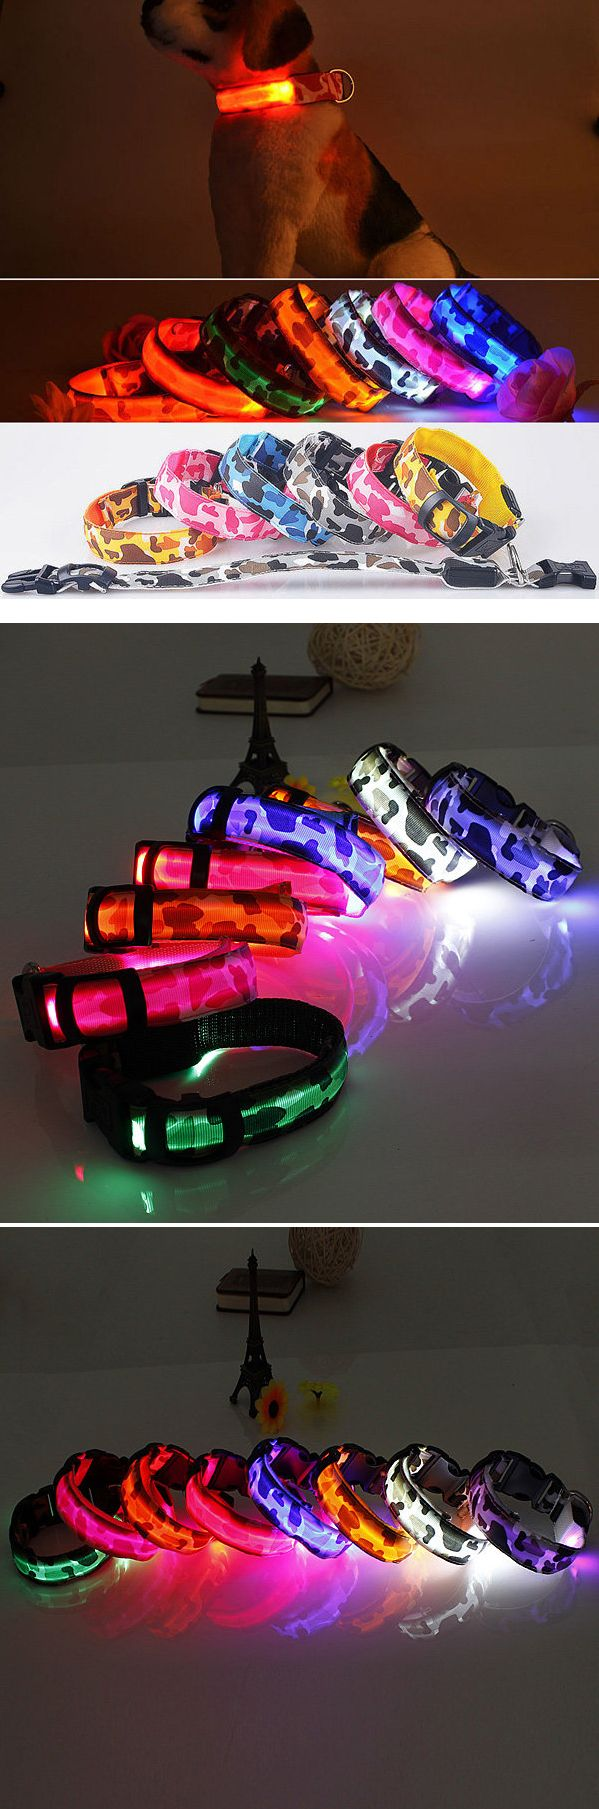 US$3.89 Pet LED Safety Light-up Flashing Collar Glow In The Dark Dog Leash Fluorescent L Size